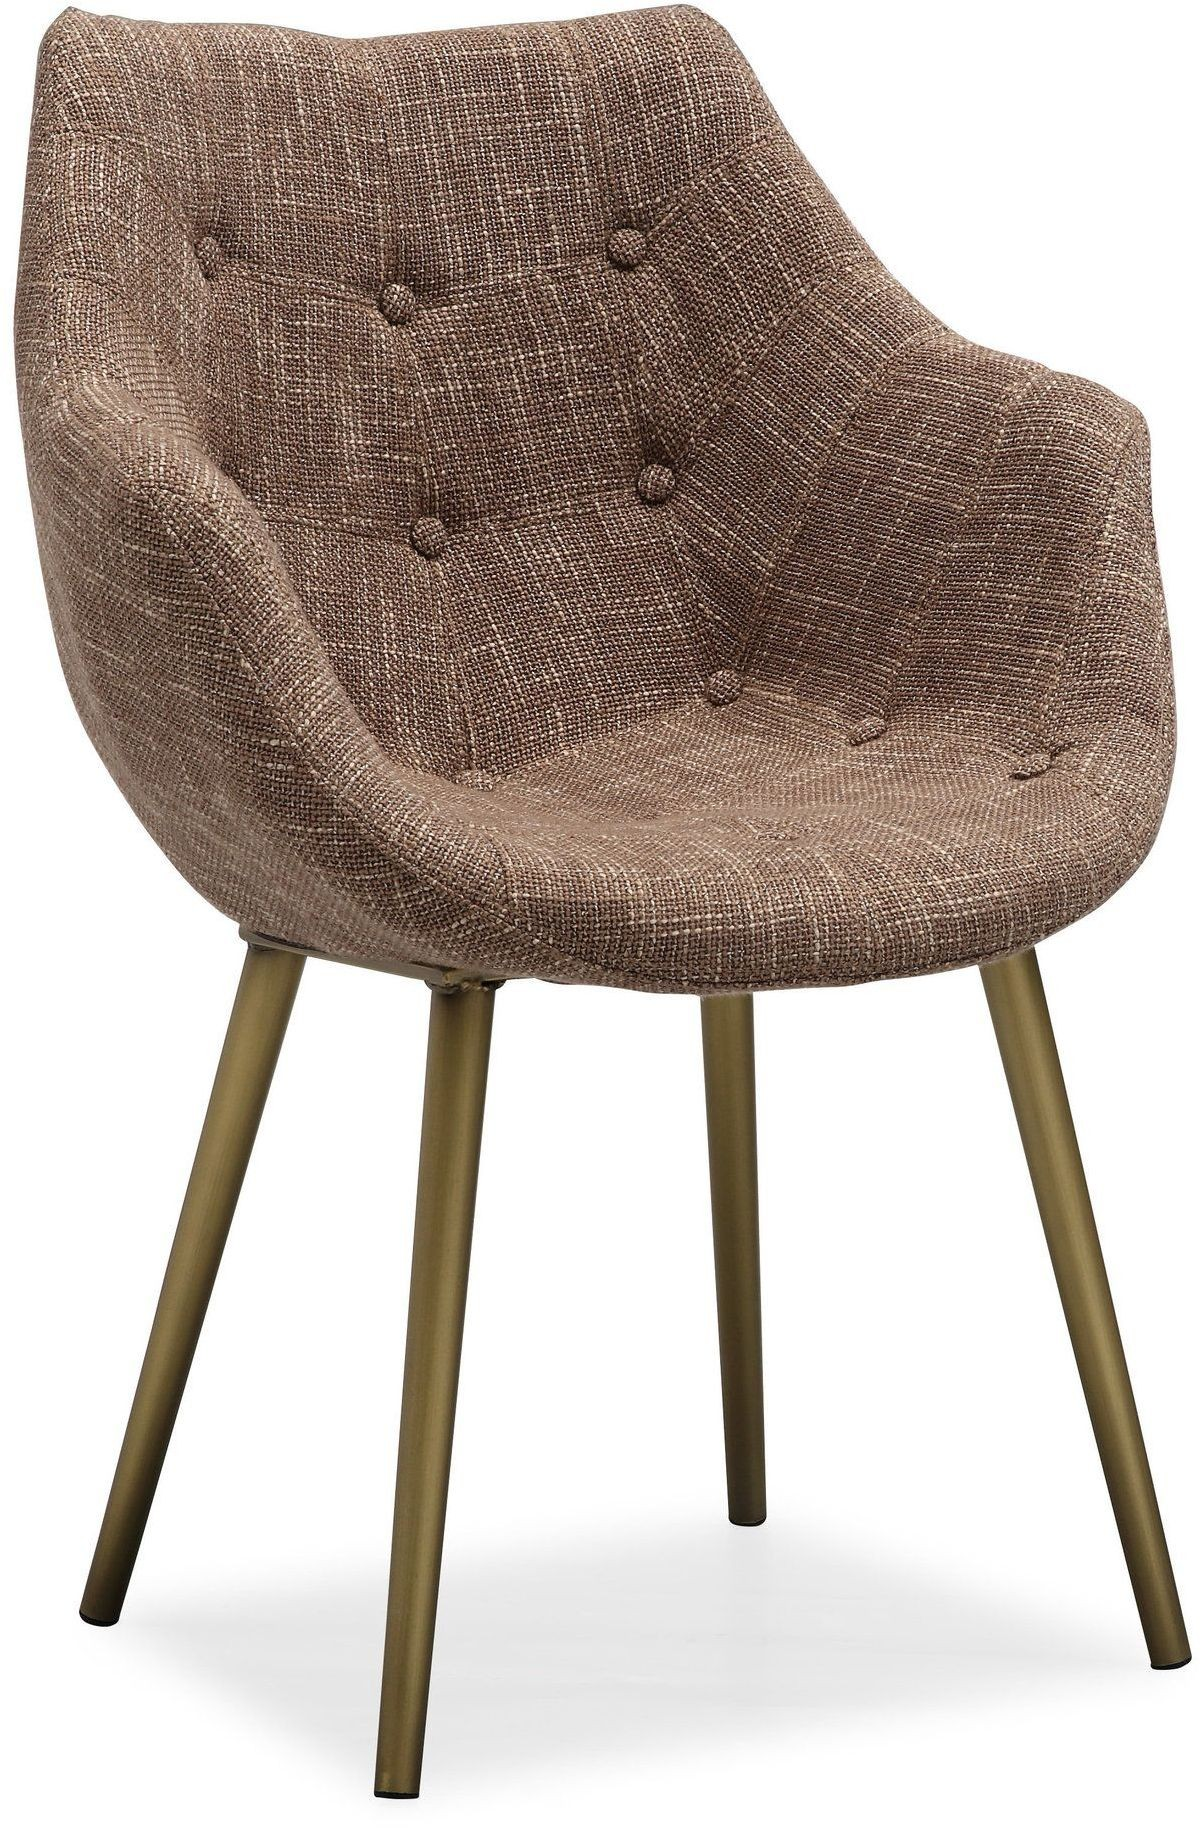 Tweed Chair Finn Brown Tweed Chair From Tov Coleman Furniture